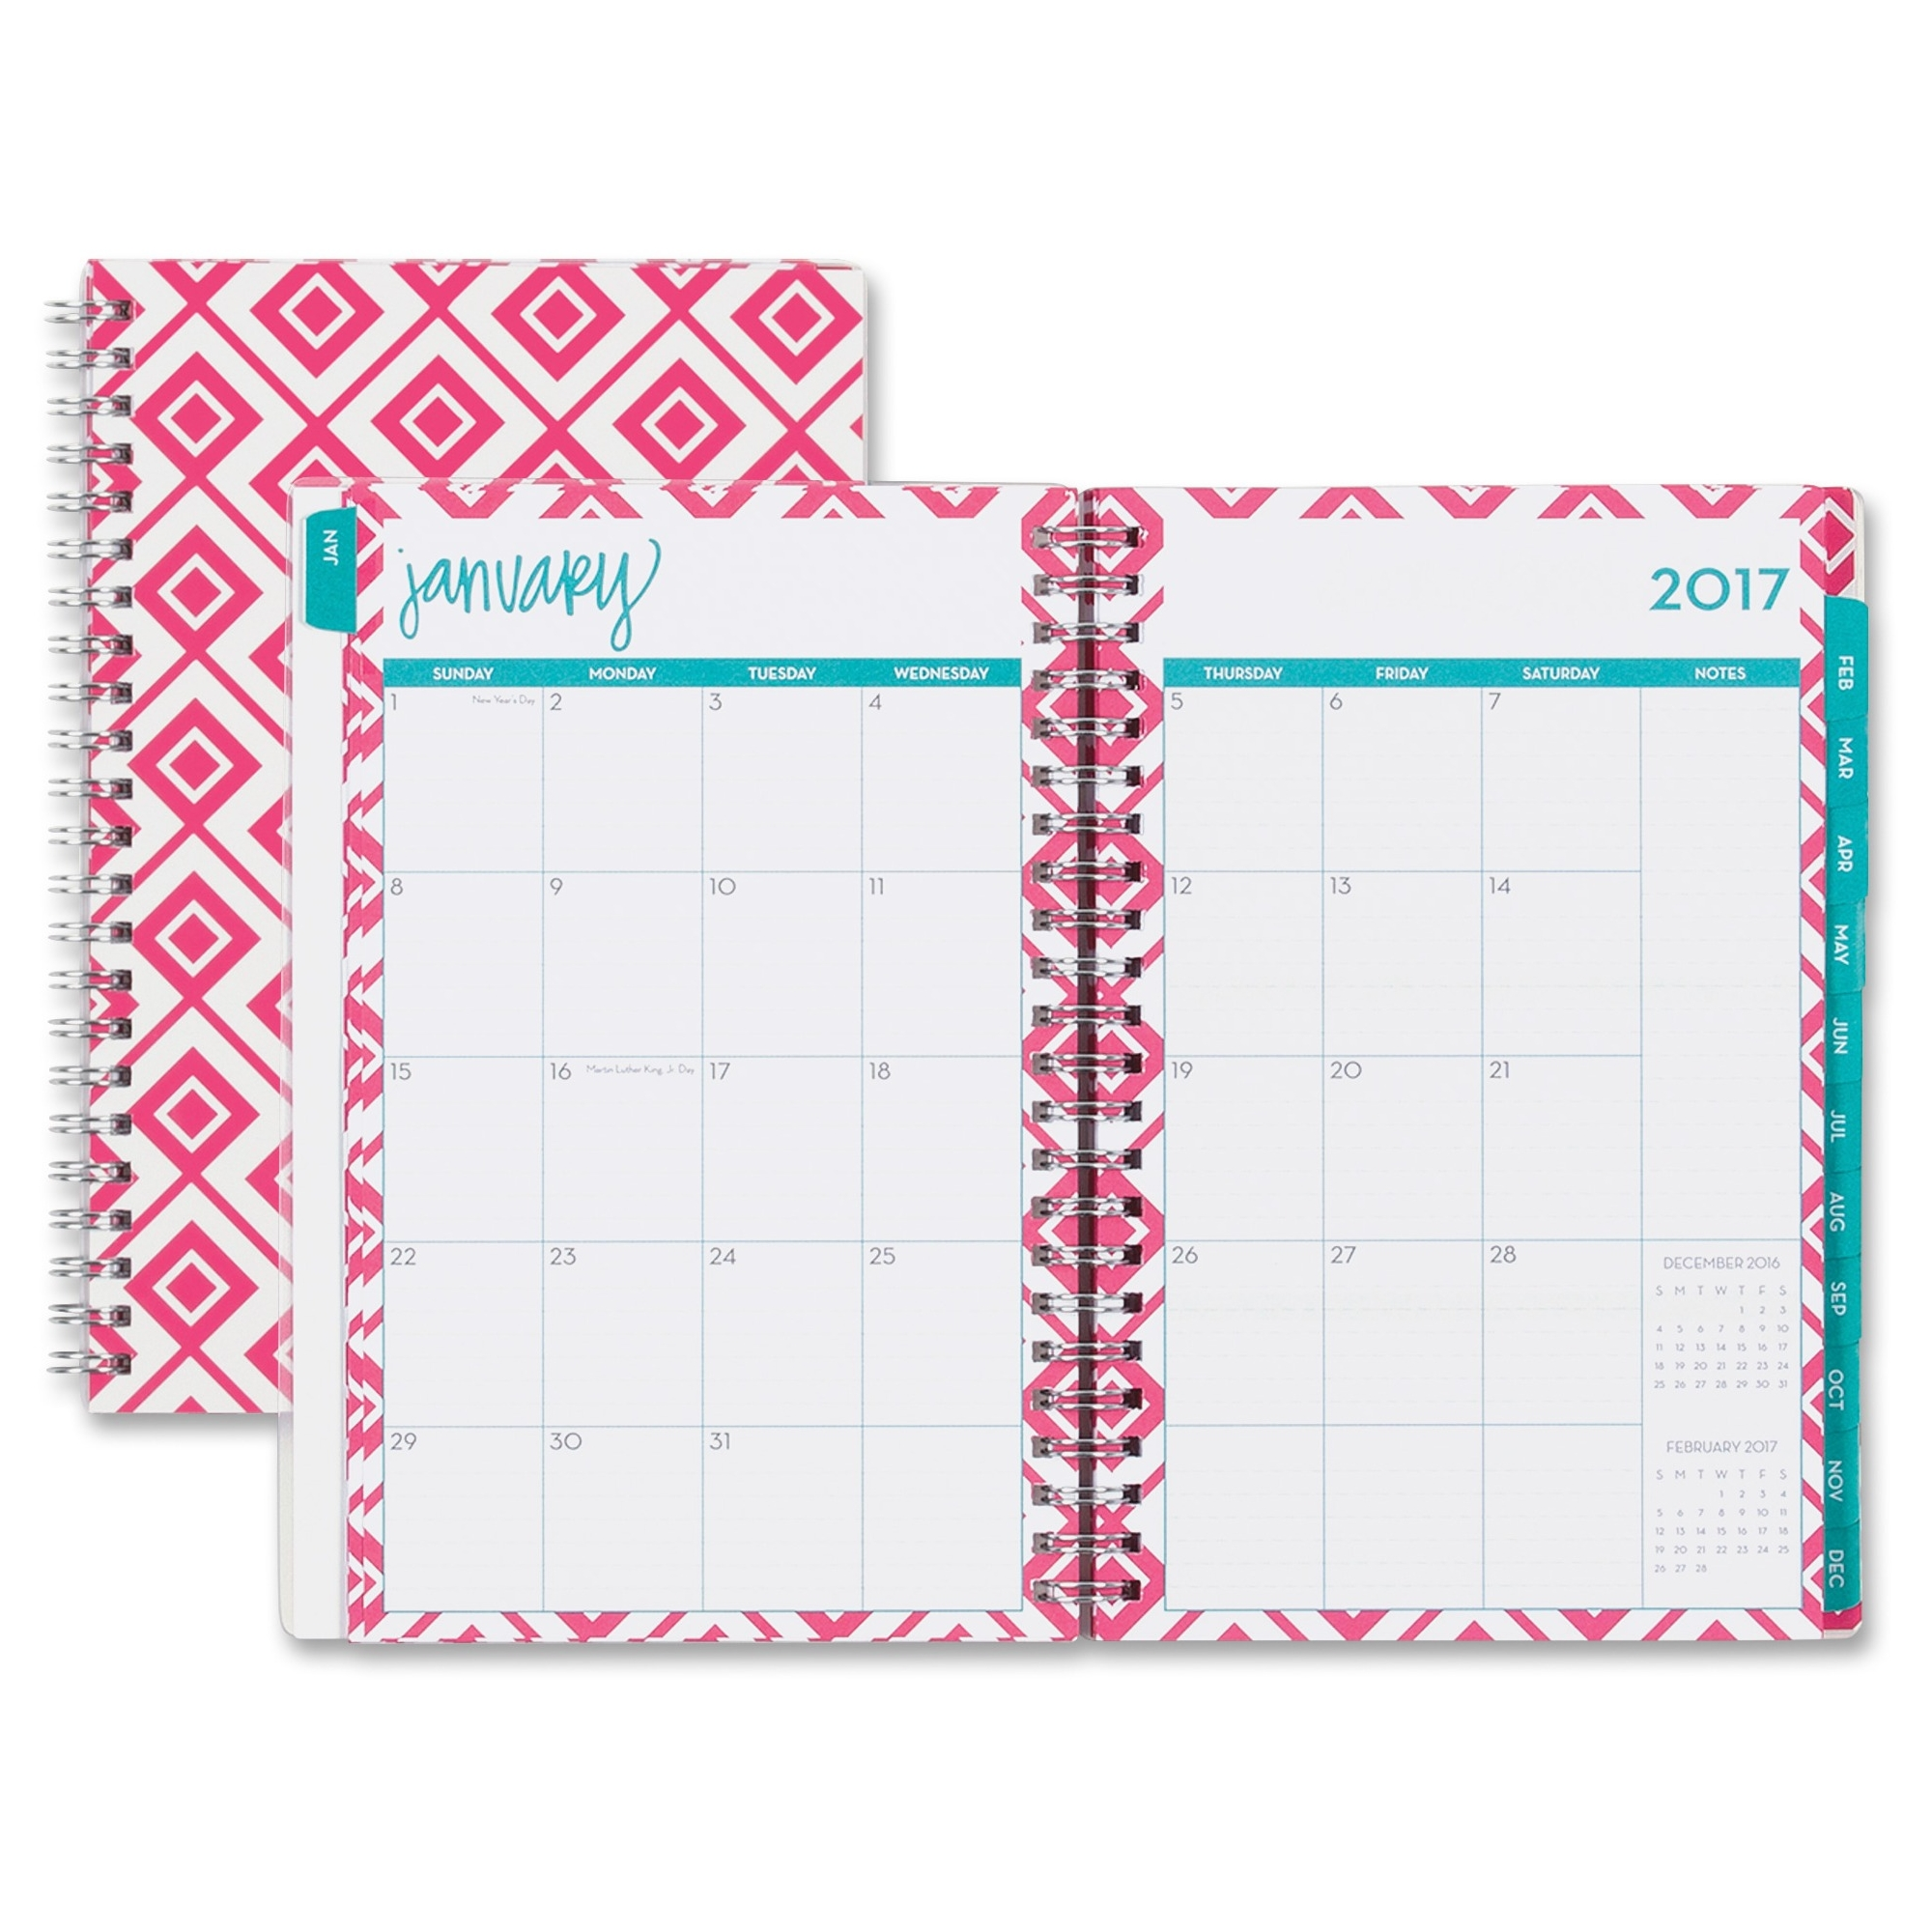 Blue Sky Lucy Frosted Planner - Weekly, Monthly, Daily - 1 Year - January Till December - 2 Month, 2 Week Double Page Layout - Twin Wire - Frosted, Multicolor - Tabbed, Writable Surface, (bls-19304)